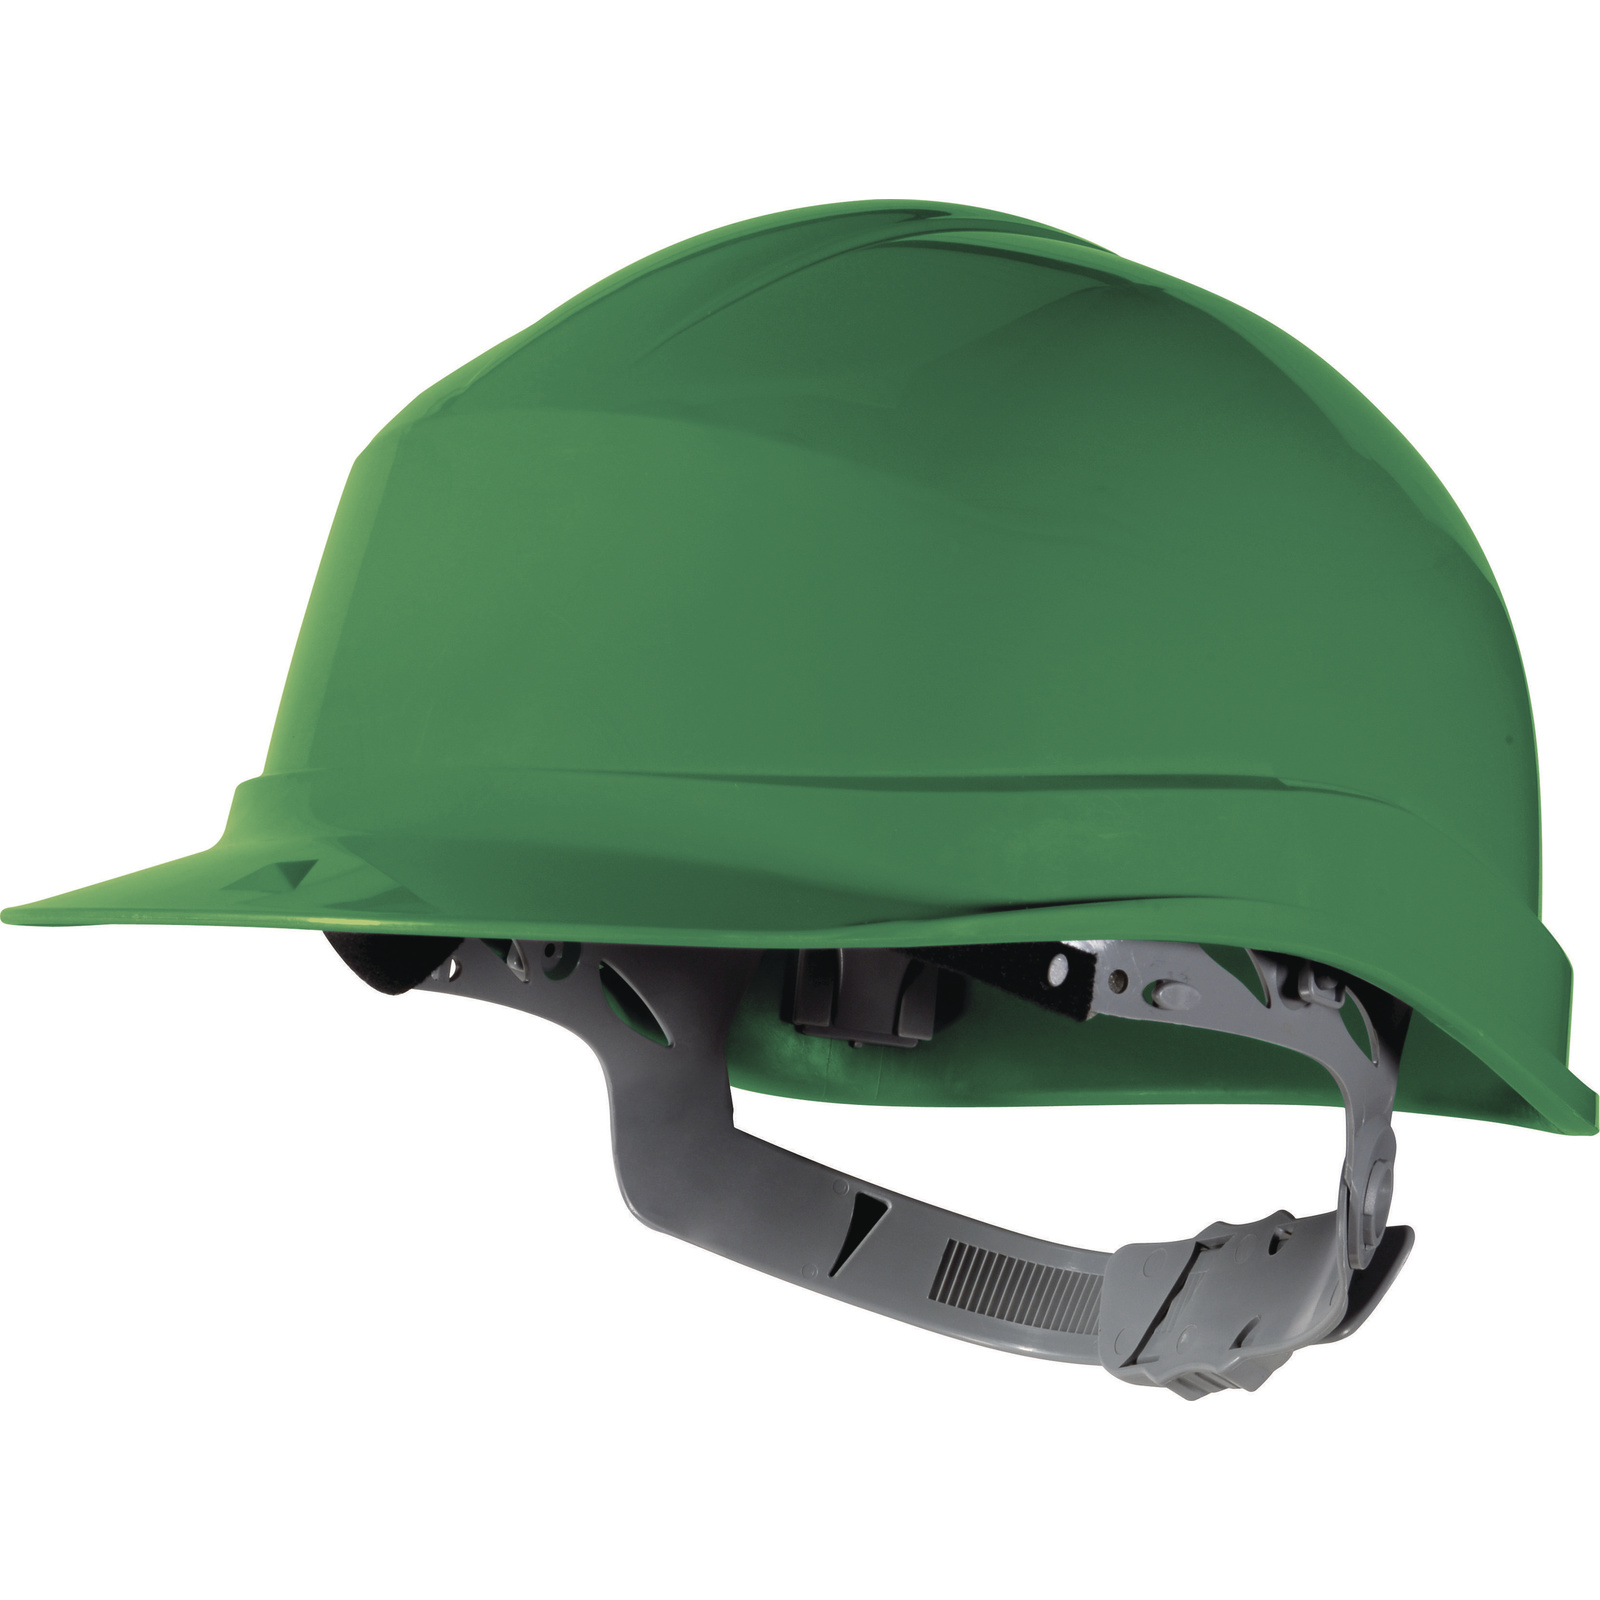 Delta Plus DYNAMIC JUGALPHA CHIN STRAP Safety For Use With Delta Plus Headwear